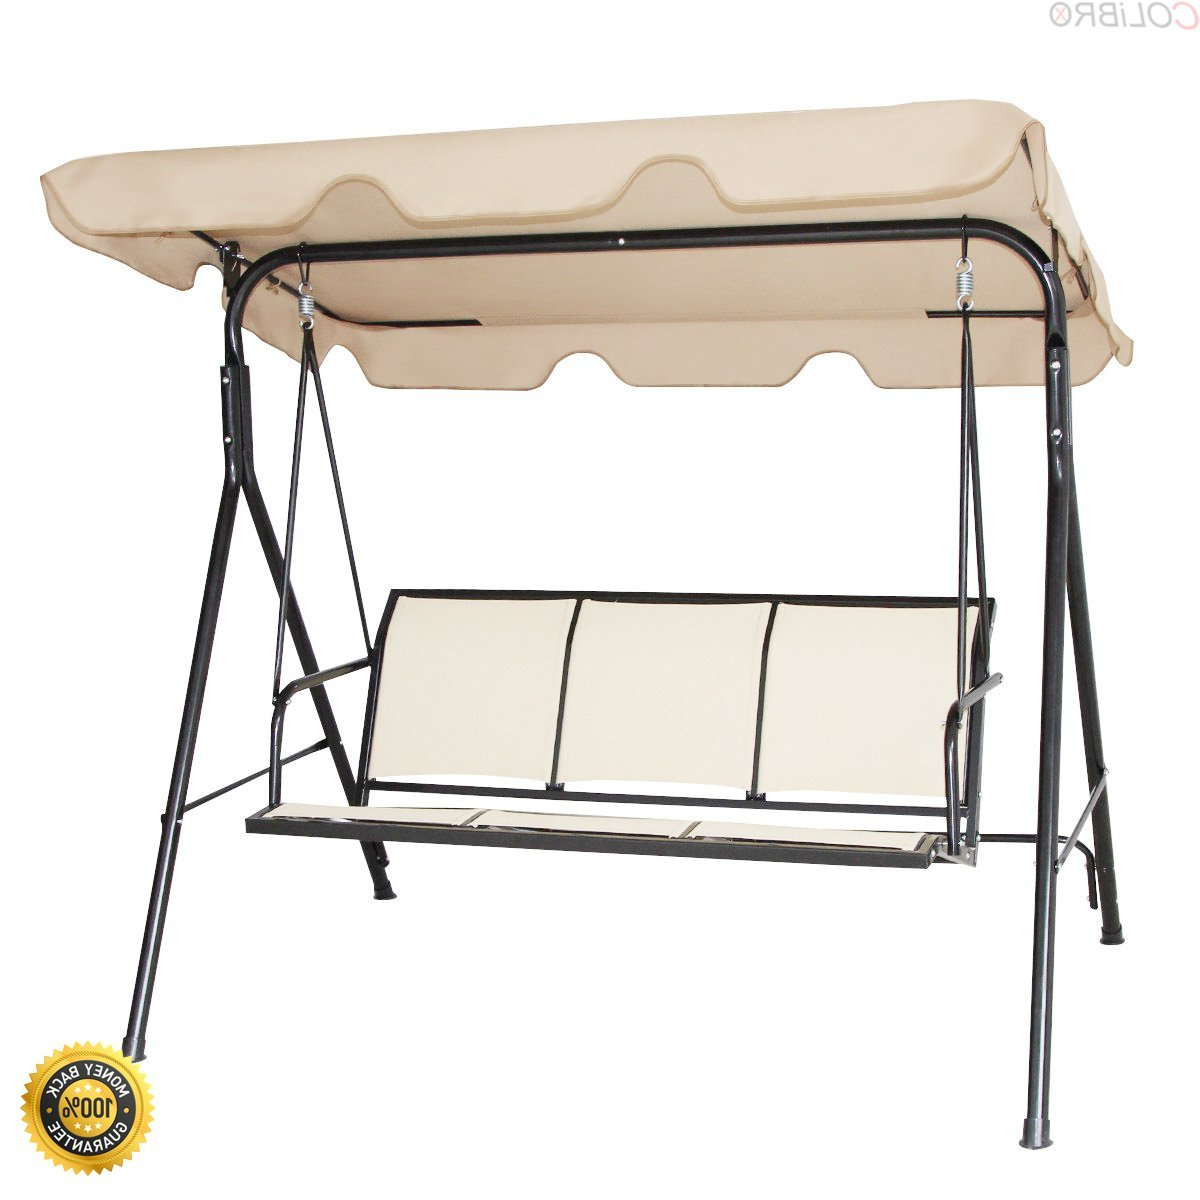 3 Person Brown Steel Outdoor Swings Within Most Up To Date Cheap 3 Person Outdoor Swing With Canopy, Find 3 Person (View 18 of 25)